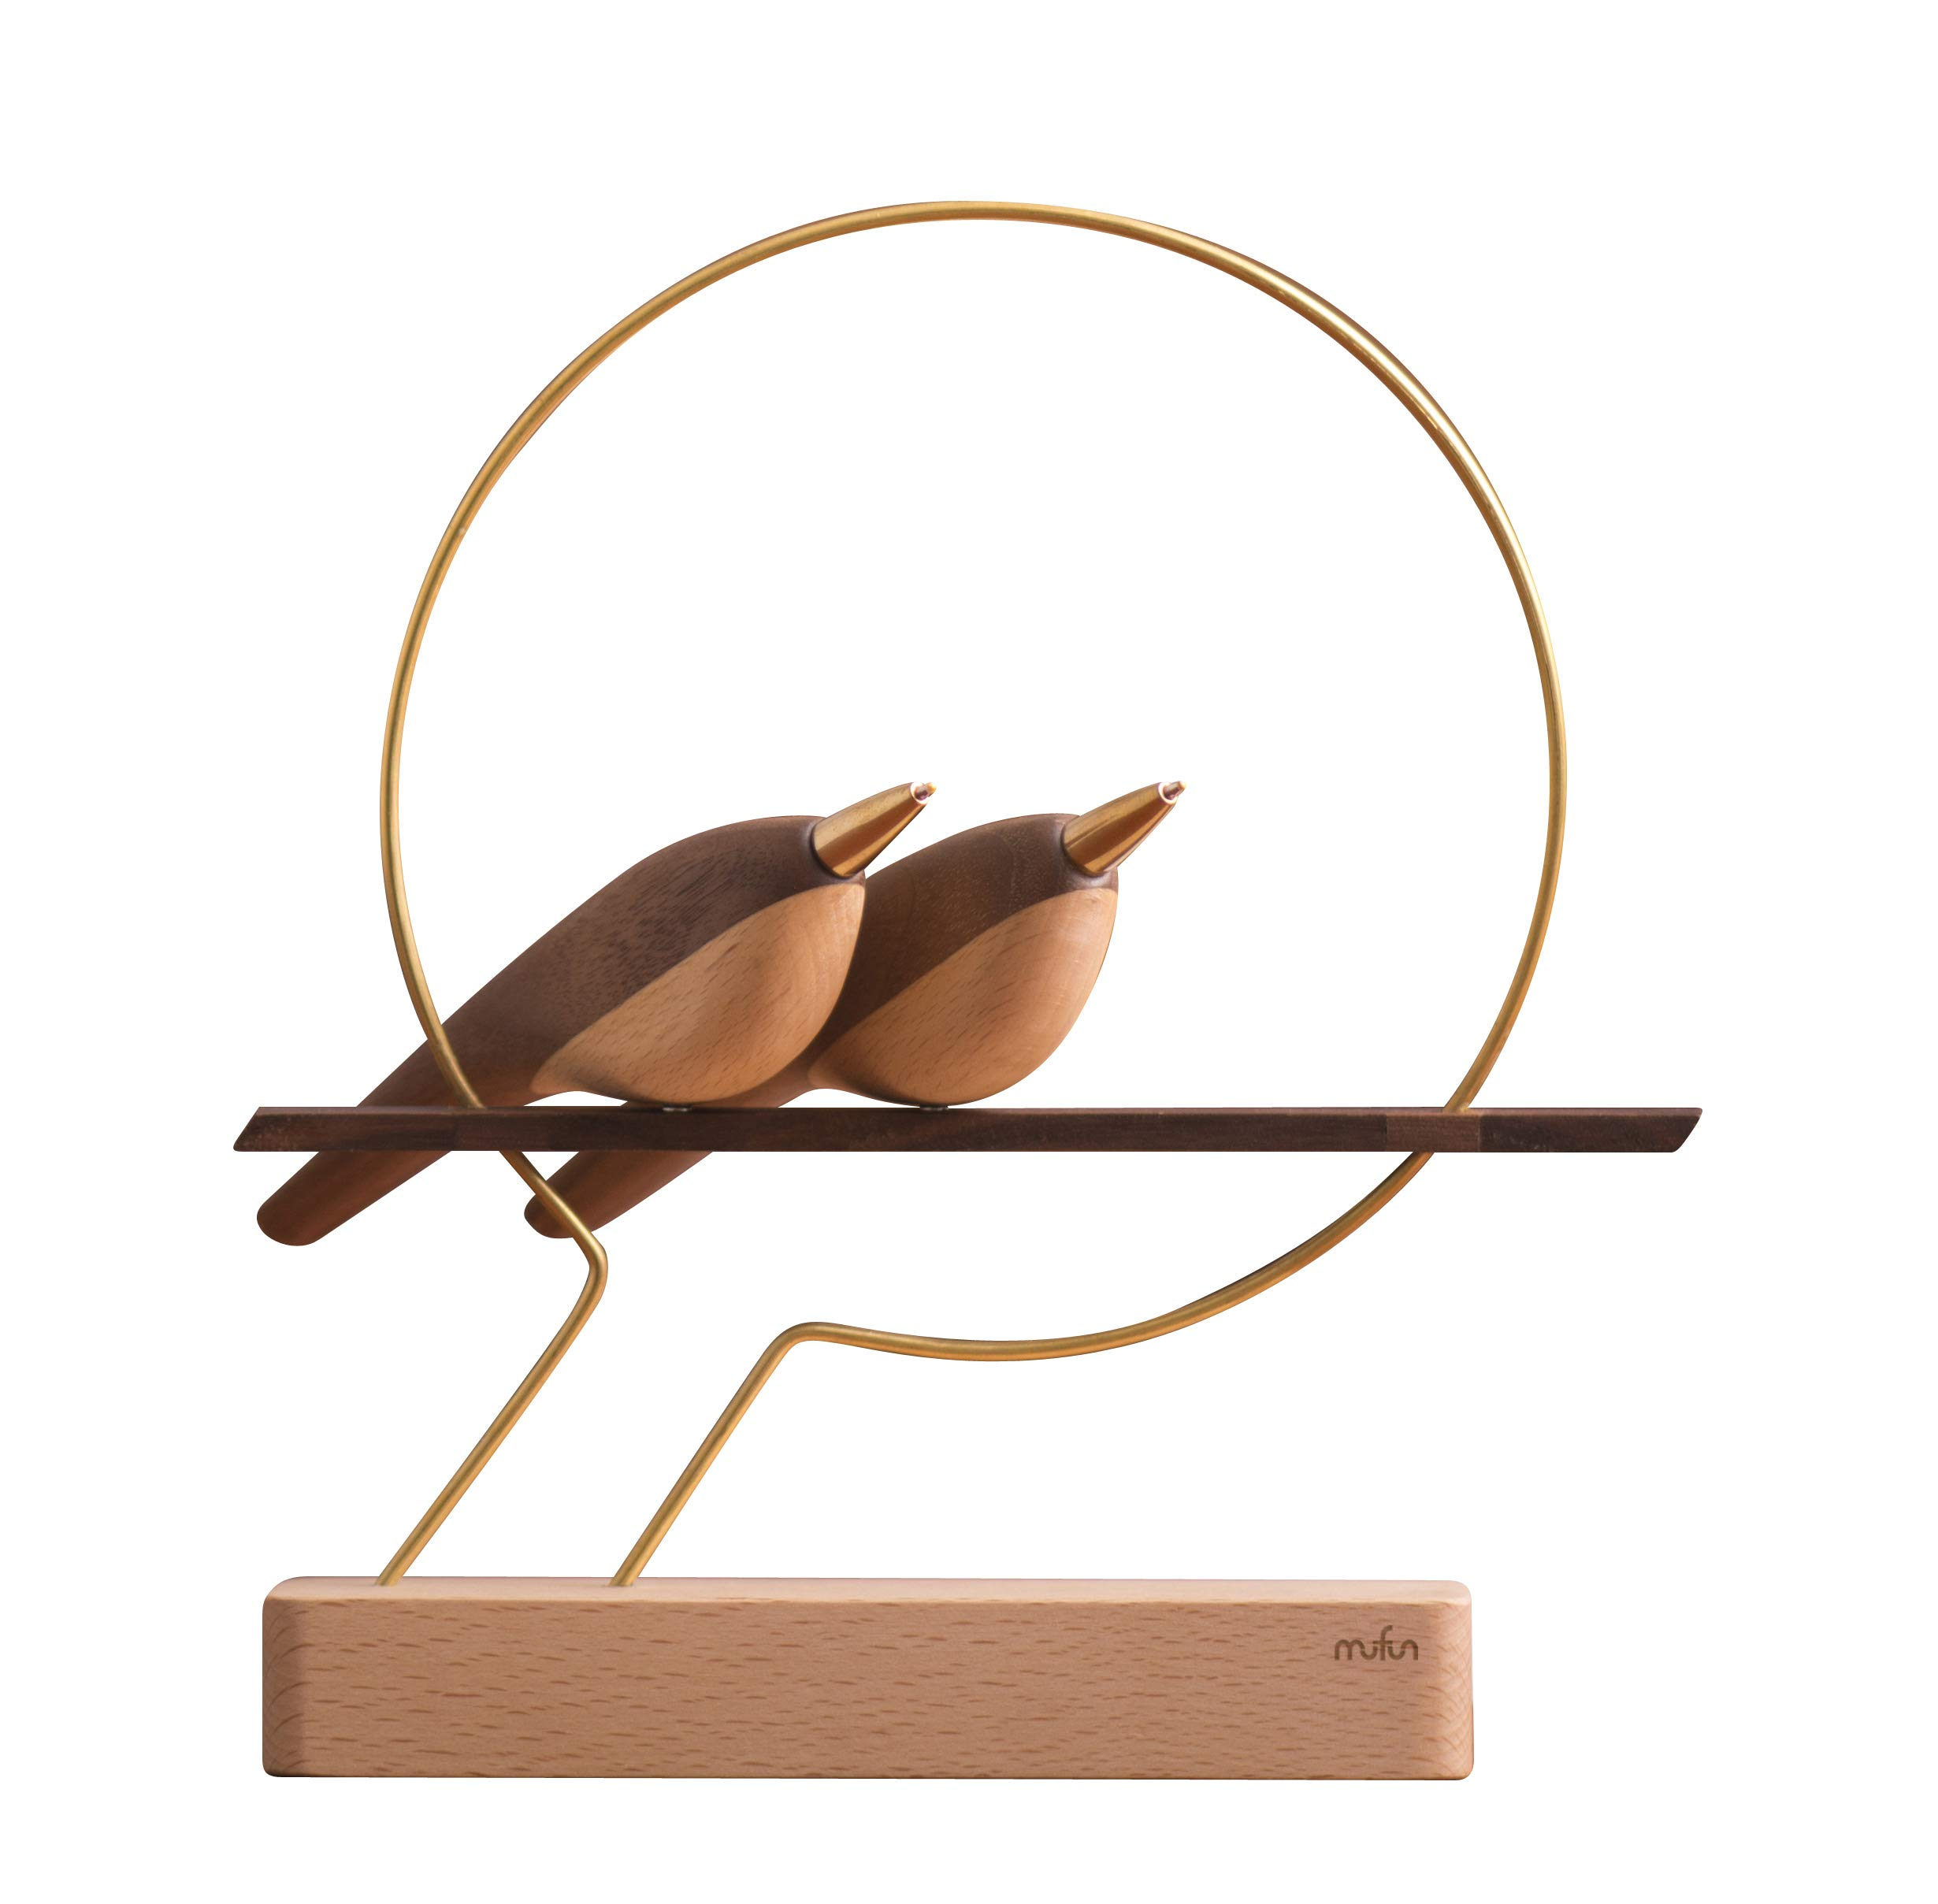 Wings of Pen - Creative bird pen design with magnetic display perch (Double) by playableART